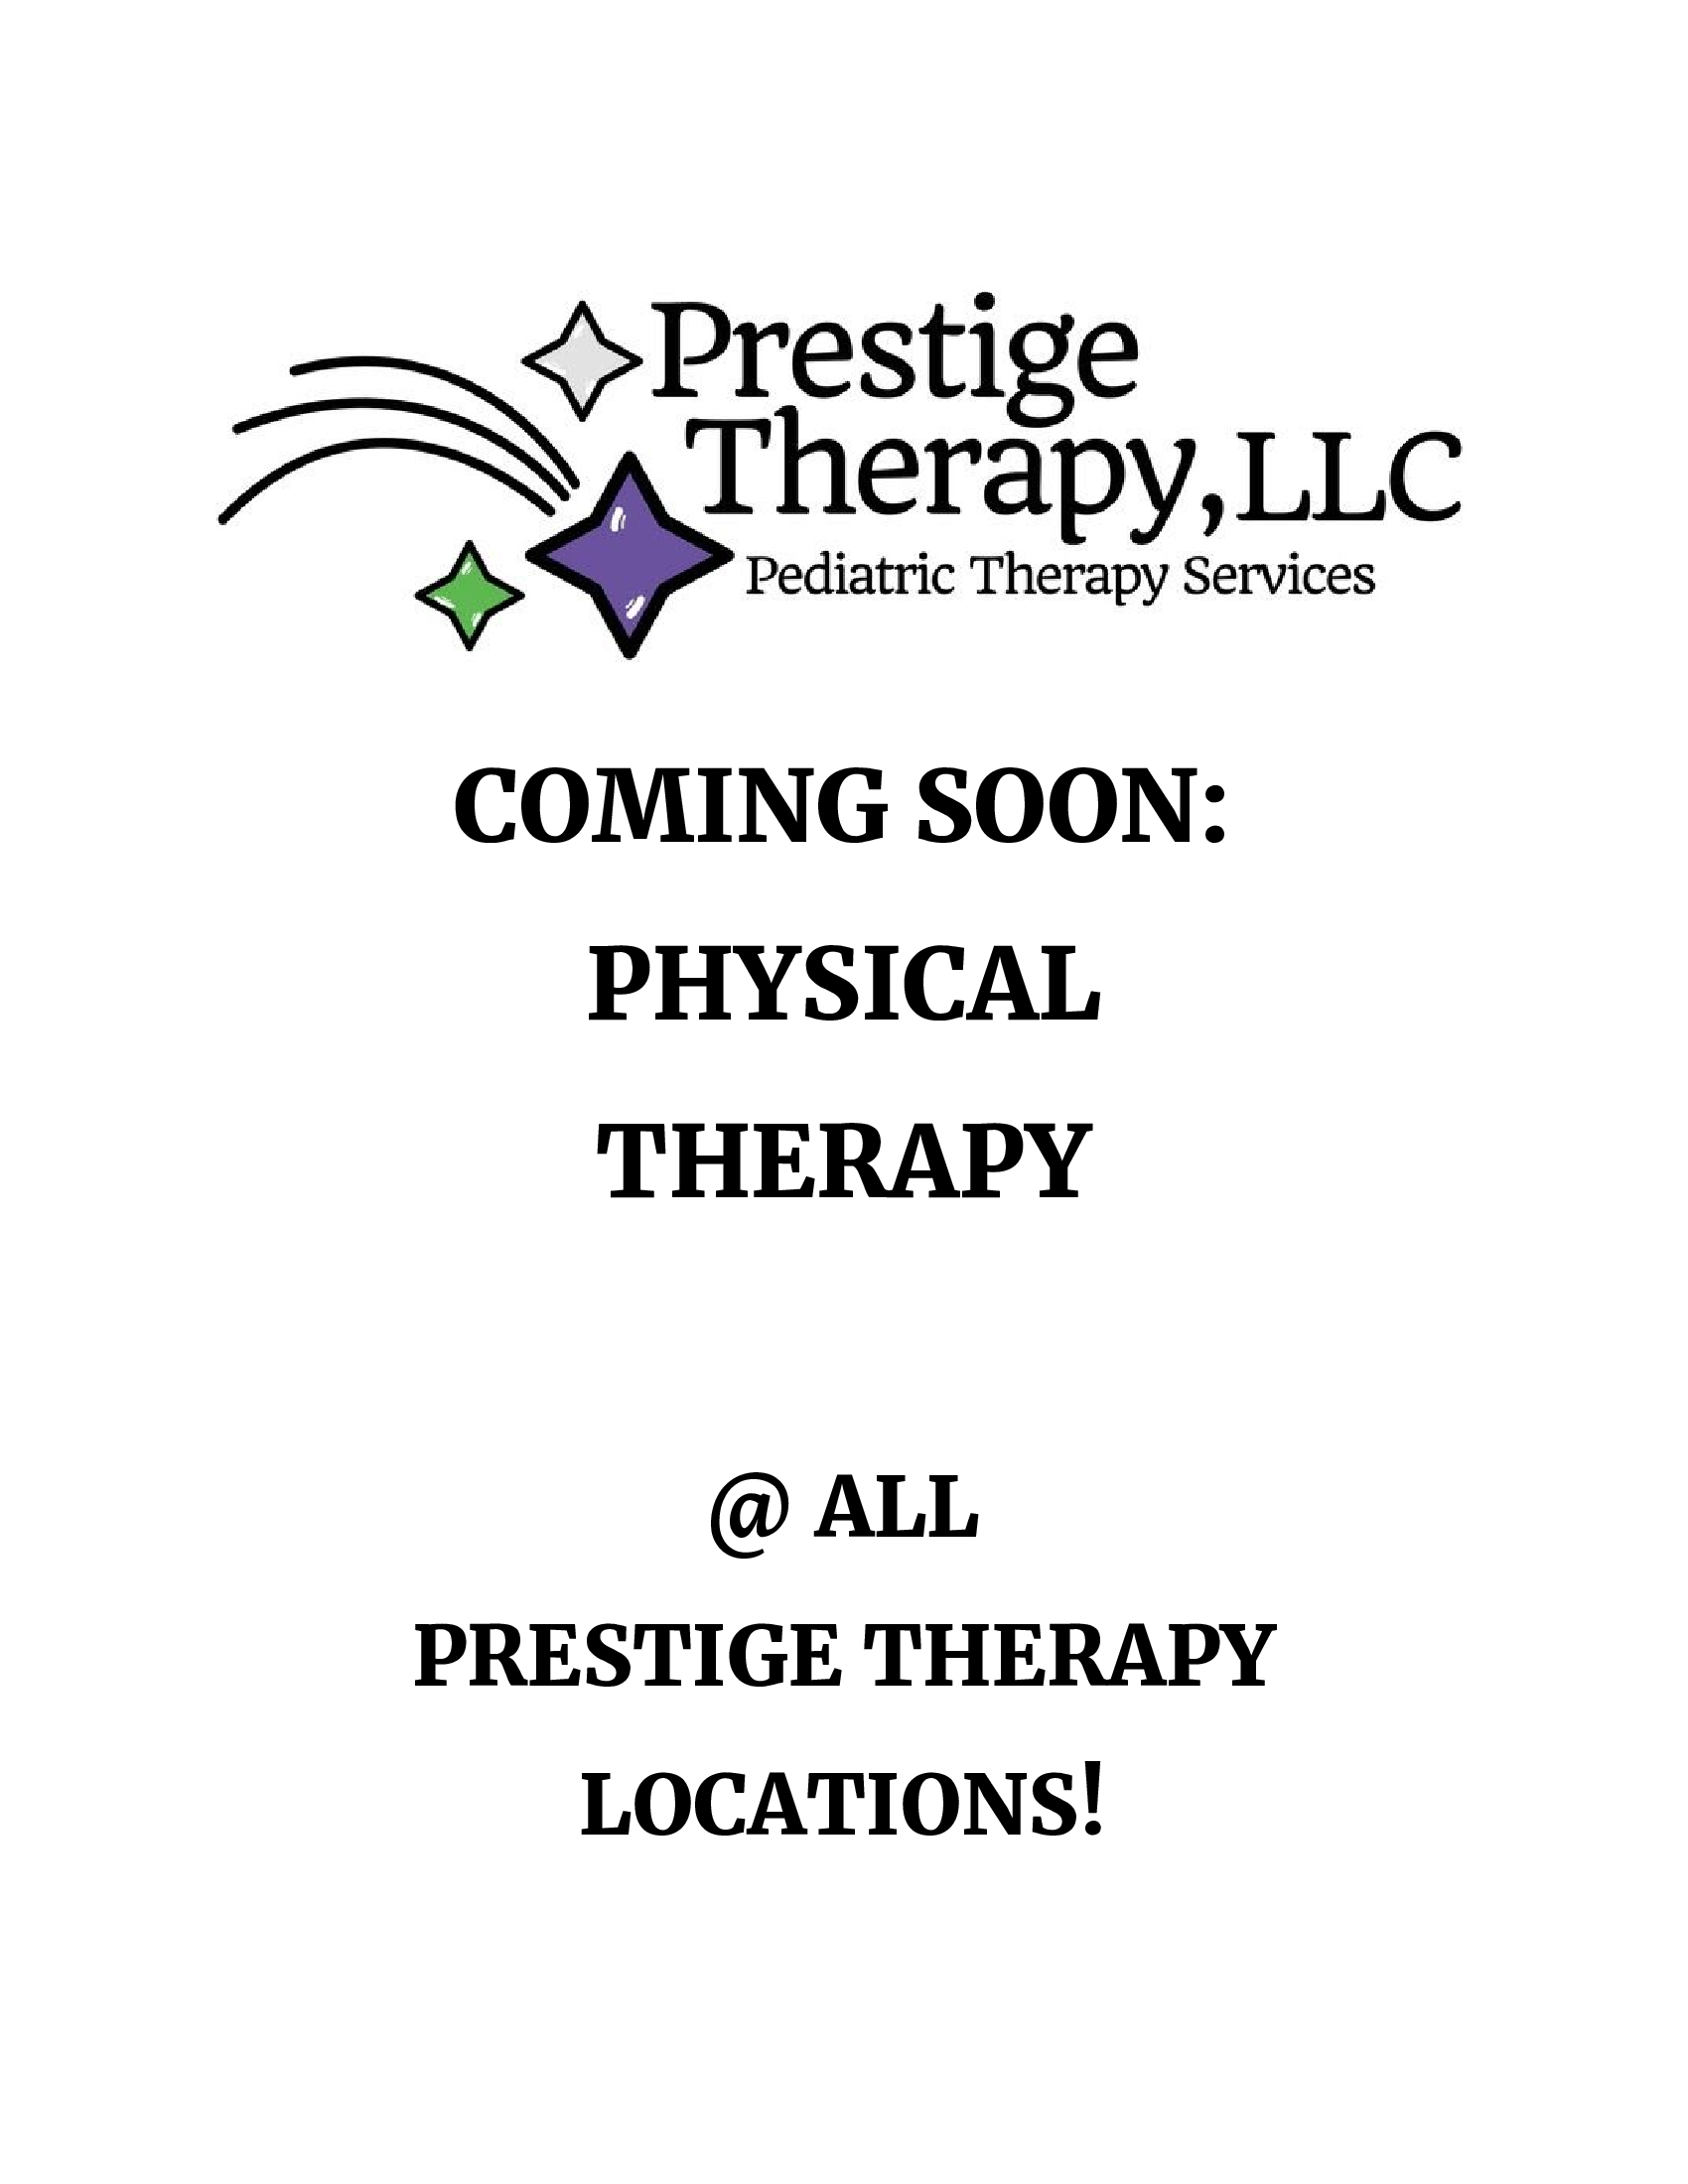 Physical Therapy at Prestige Therapy